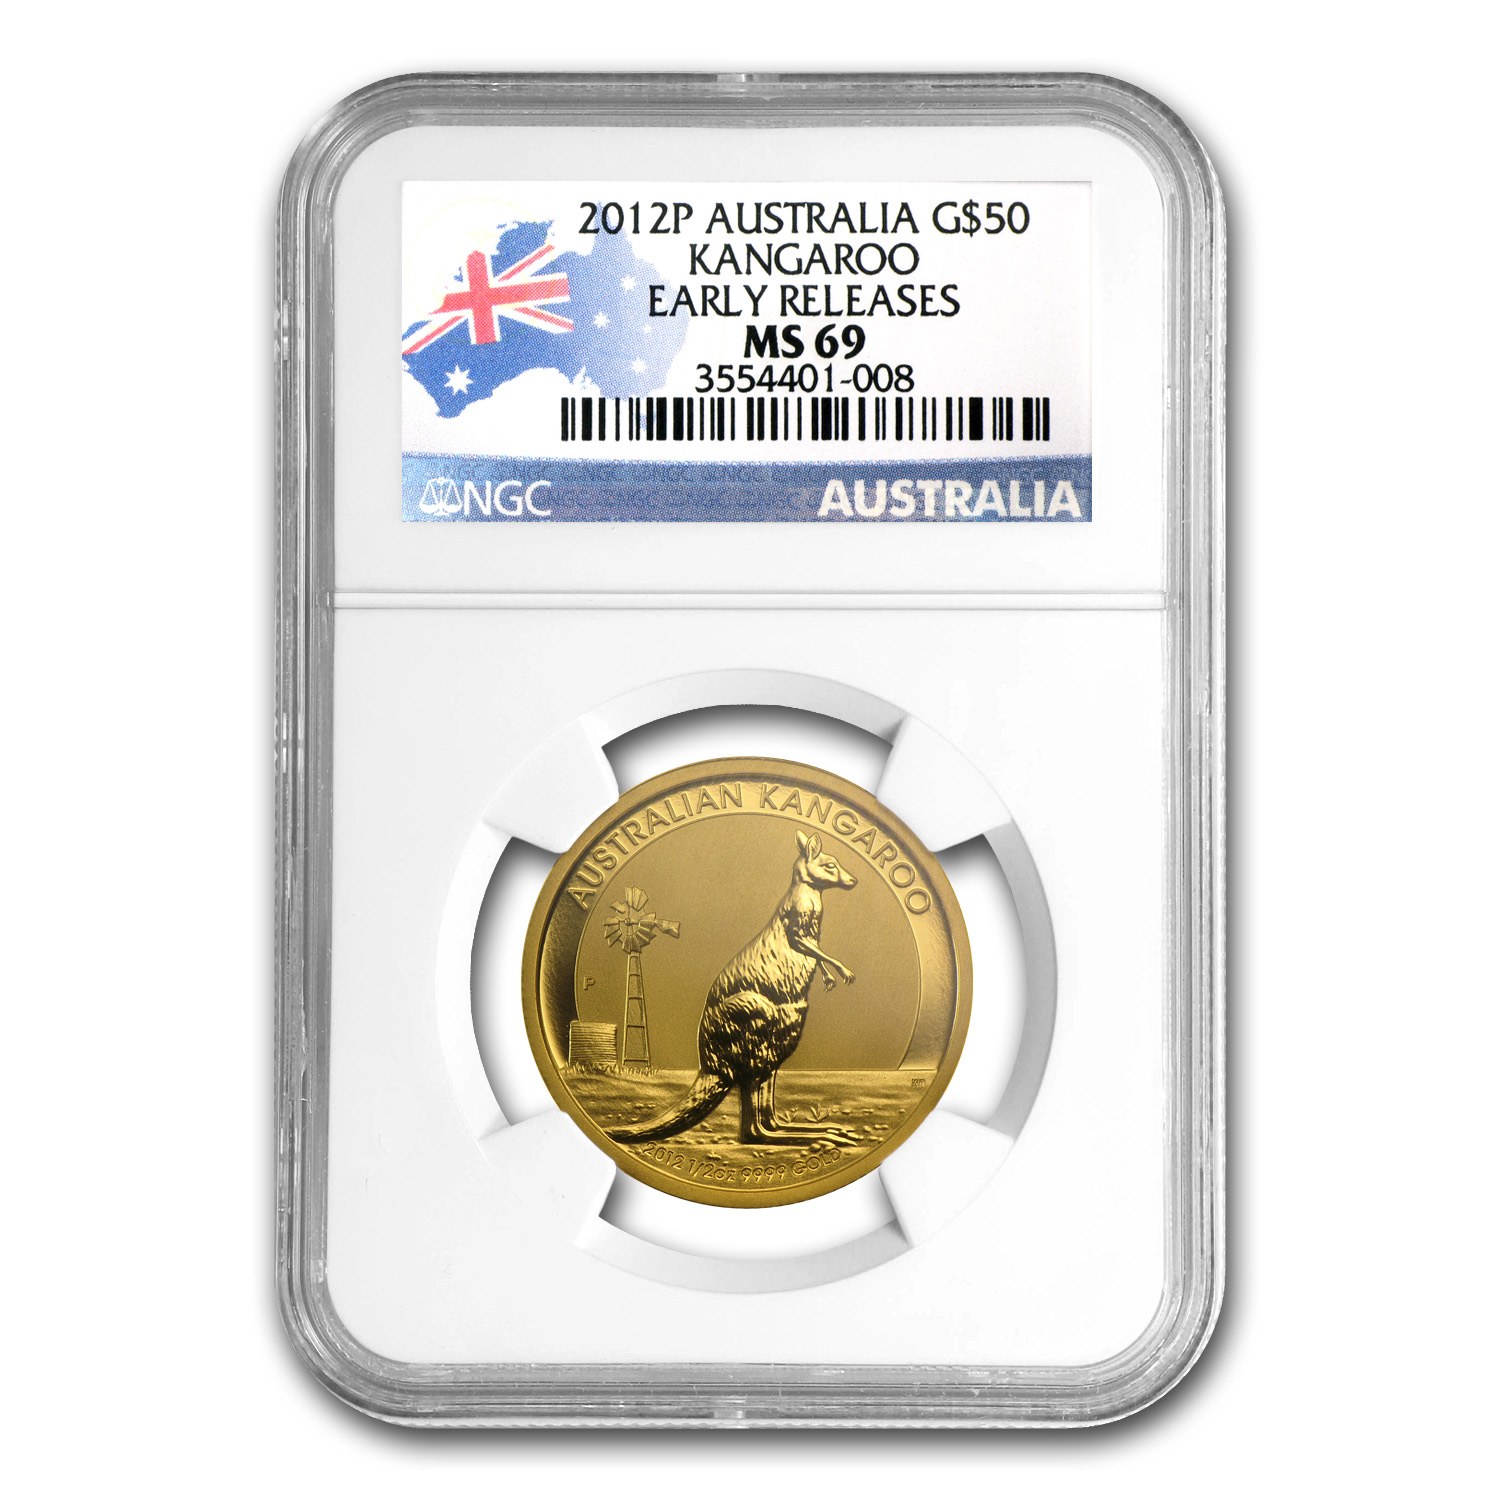 2012 1/2 oz Australian Gold Kangaroo MS-69 NGC (Early Releases)